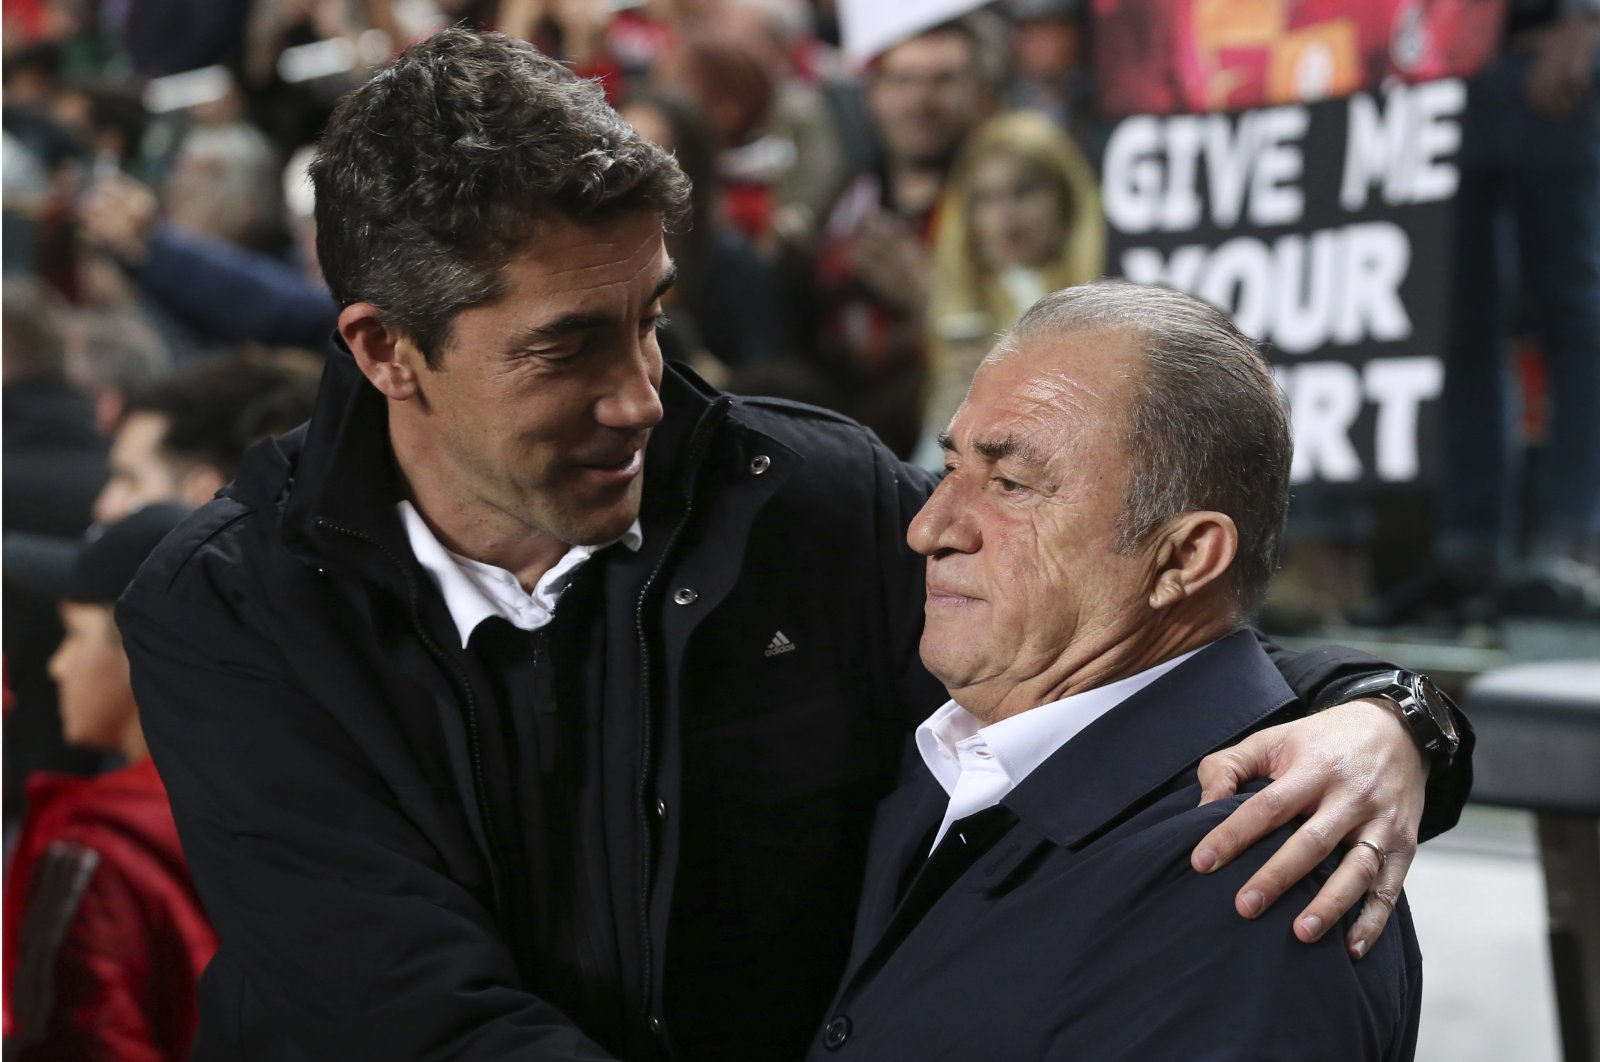 Then-Benfica head coach Bruno Lage (L) greets Galatasaray coach Fatih Terim prior to a Europa League match at the Luz stadium in Lisbon, Portugal, Feb. 21, 2019. (AP Photo)